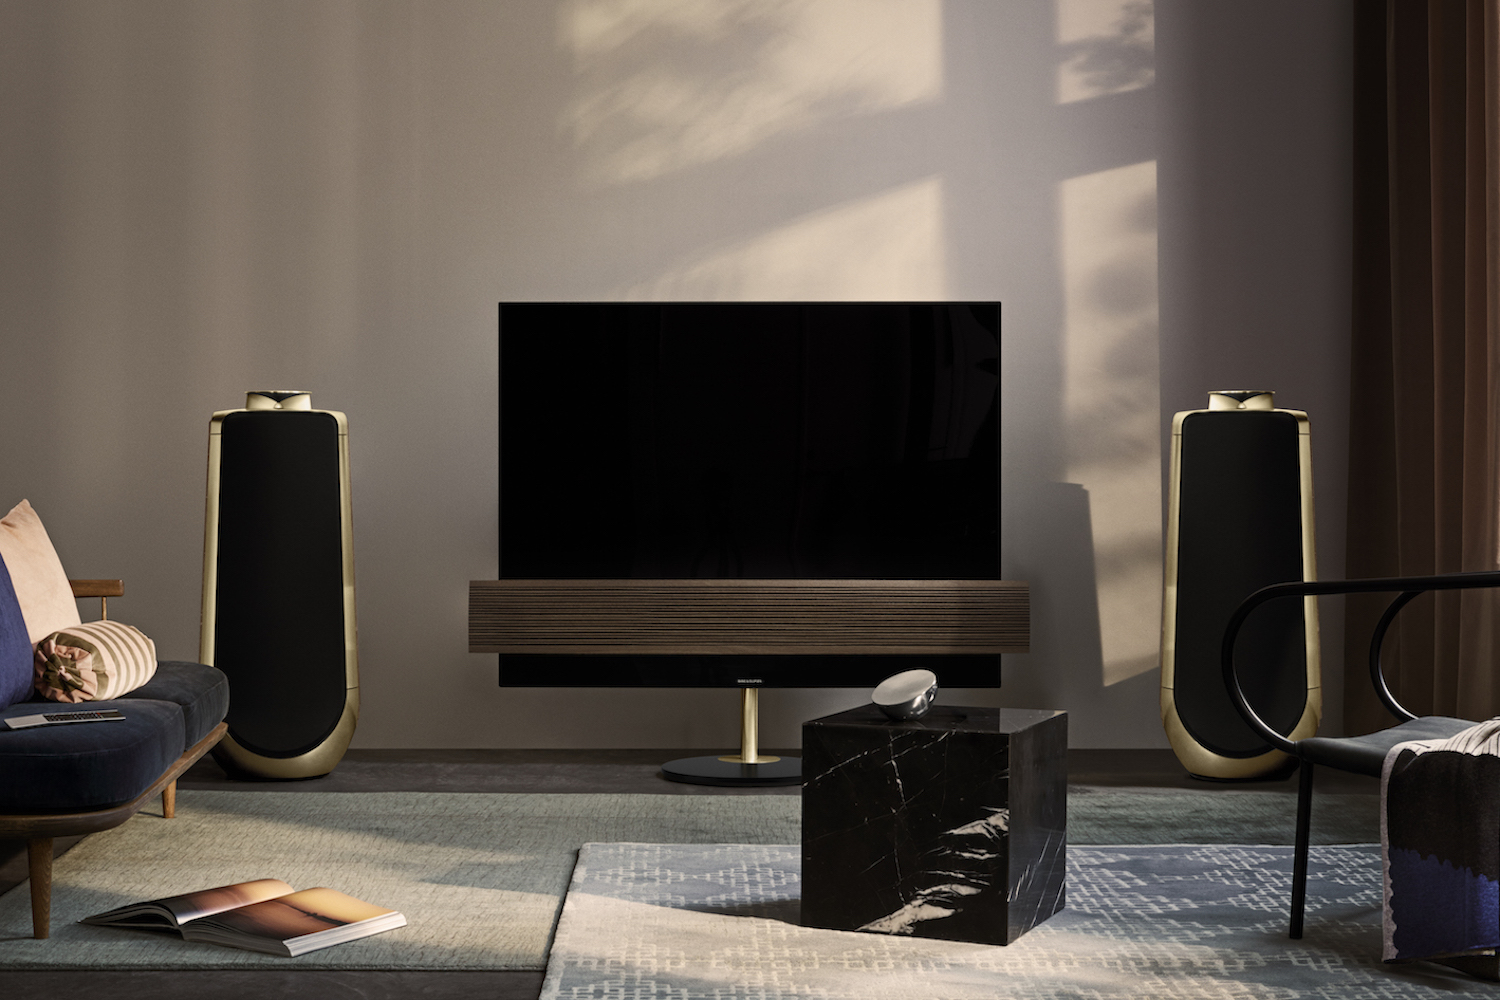 Bang  Olufsens stunning OLED TV and speaker get a new